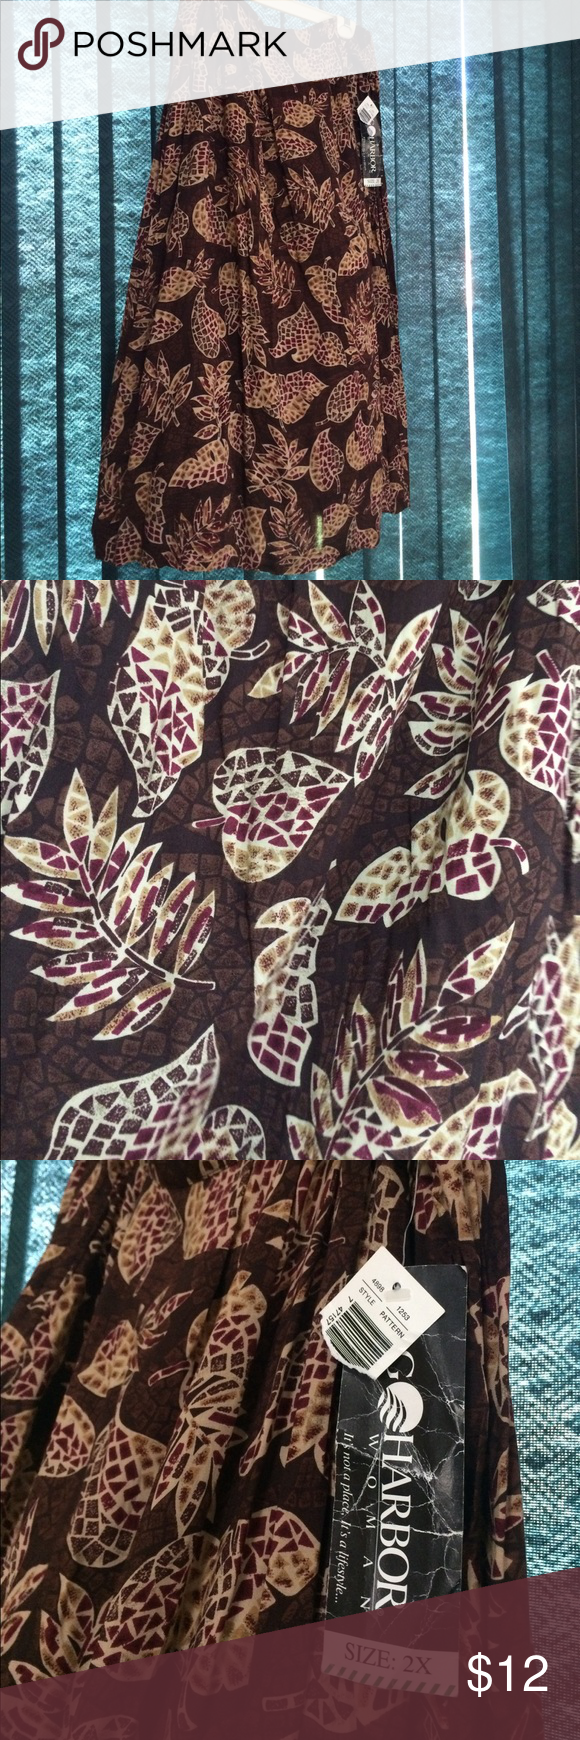 """NWT Skirt Size 2X Beautiful leaf print skirt perfect for fall / autumn time. Approximate length 33"""" waist 19"""" Sag Harbor Skirts"""